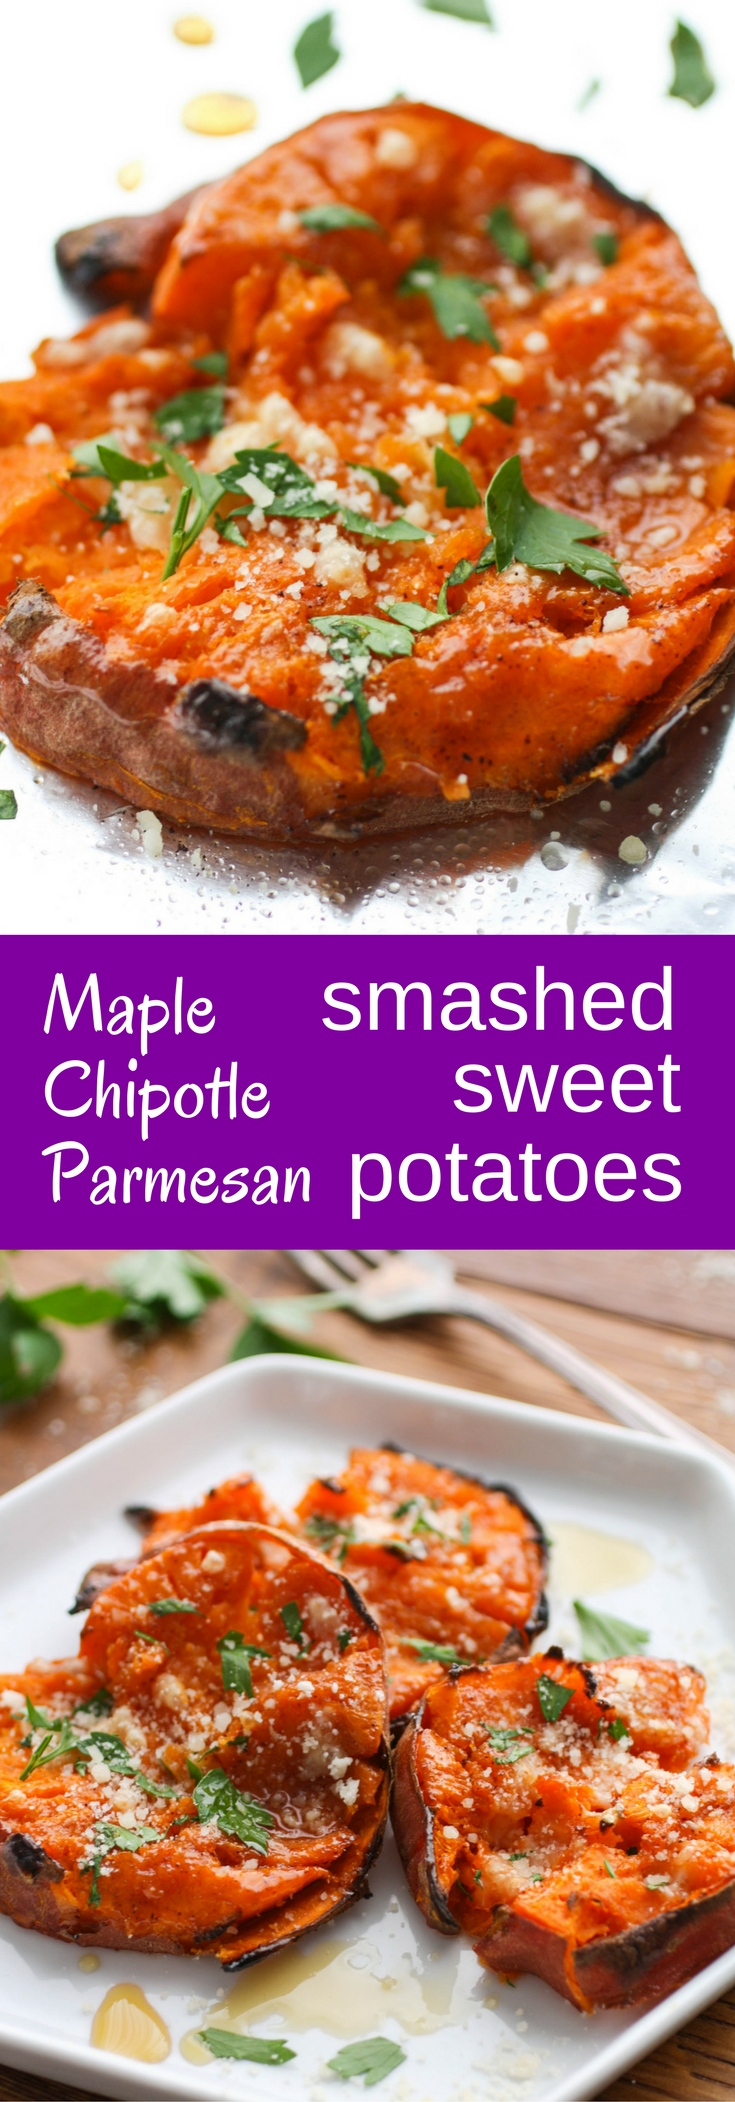 Maple Chipotle Parmesan Smashed Sweet Potatoes are a fun side dish that taste amazing, too! Makes these potatoes any night of the week.